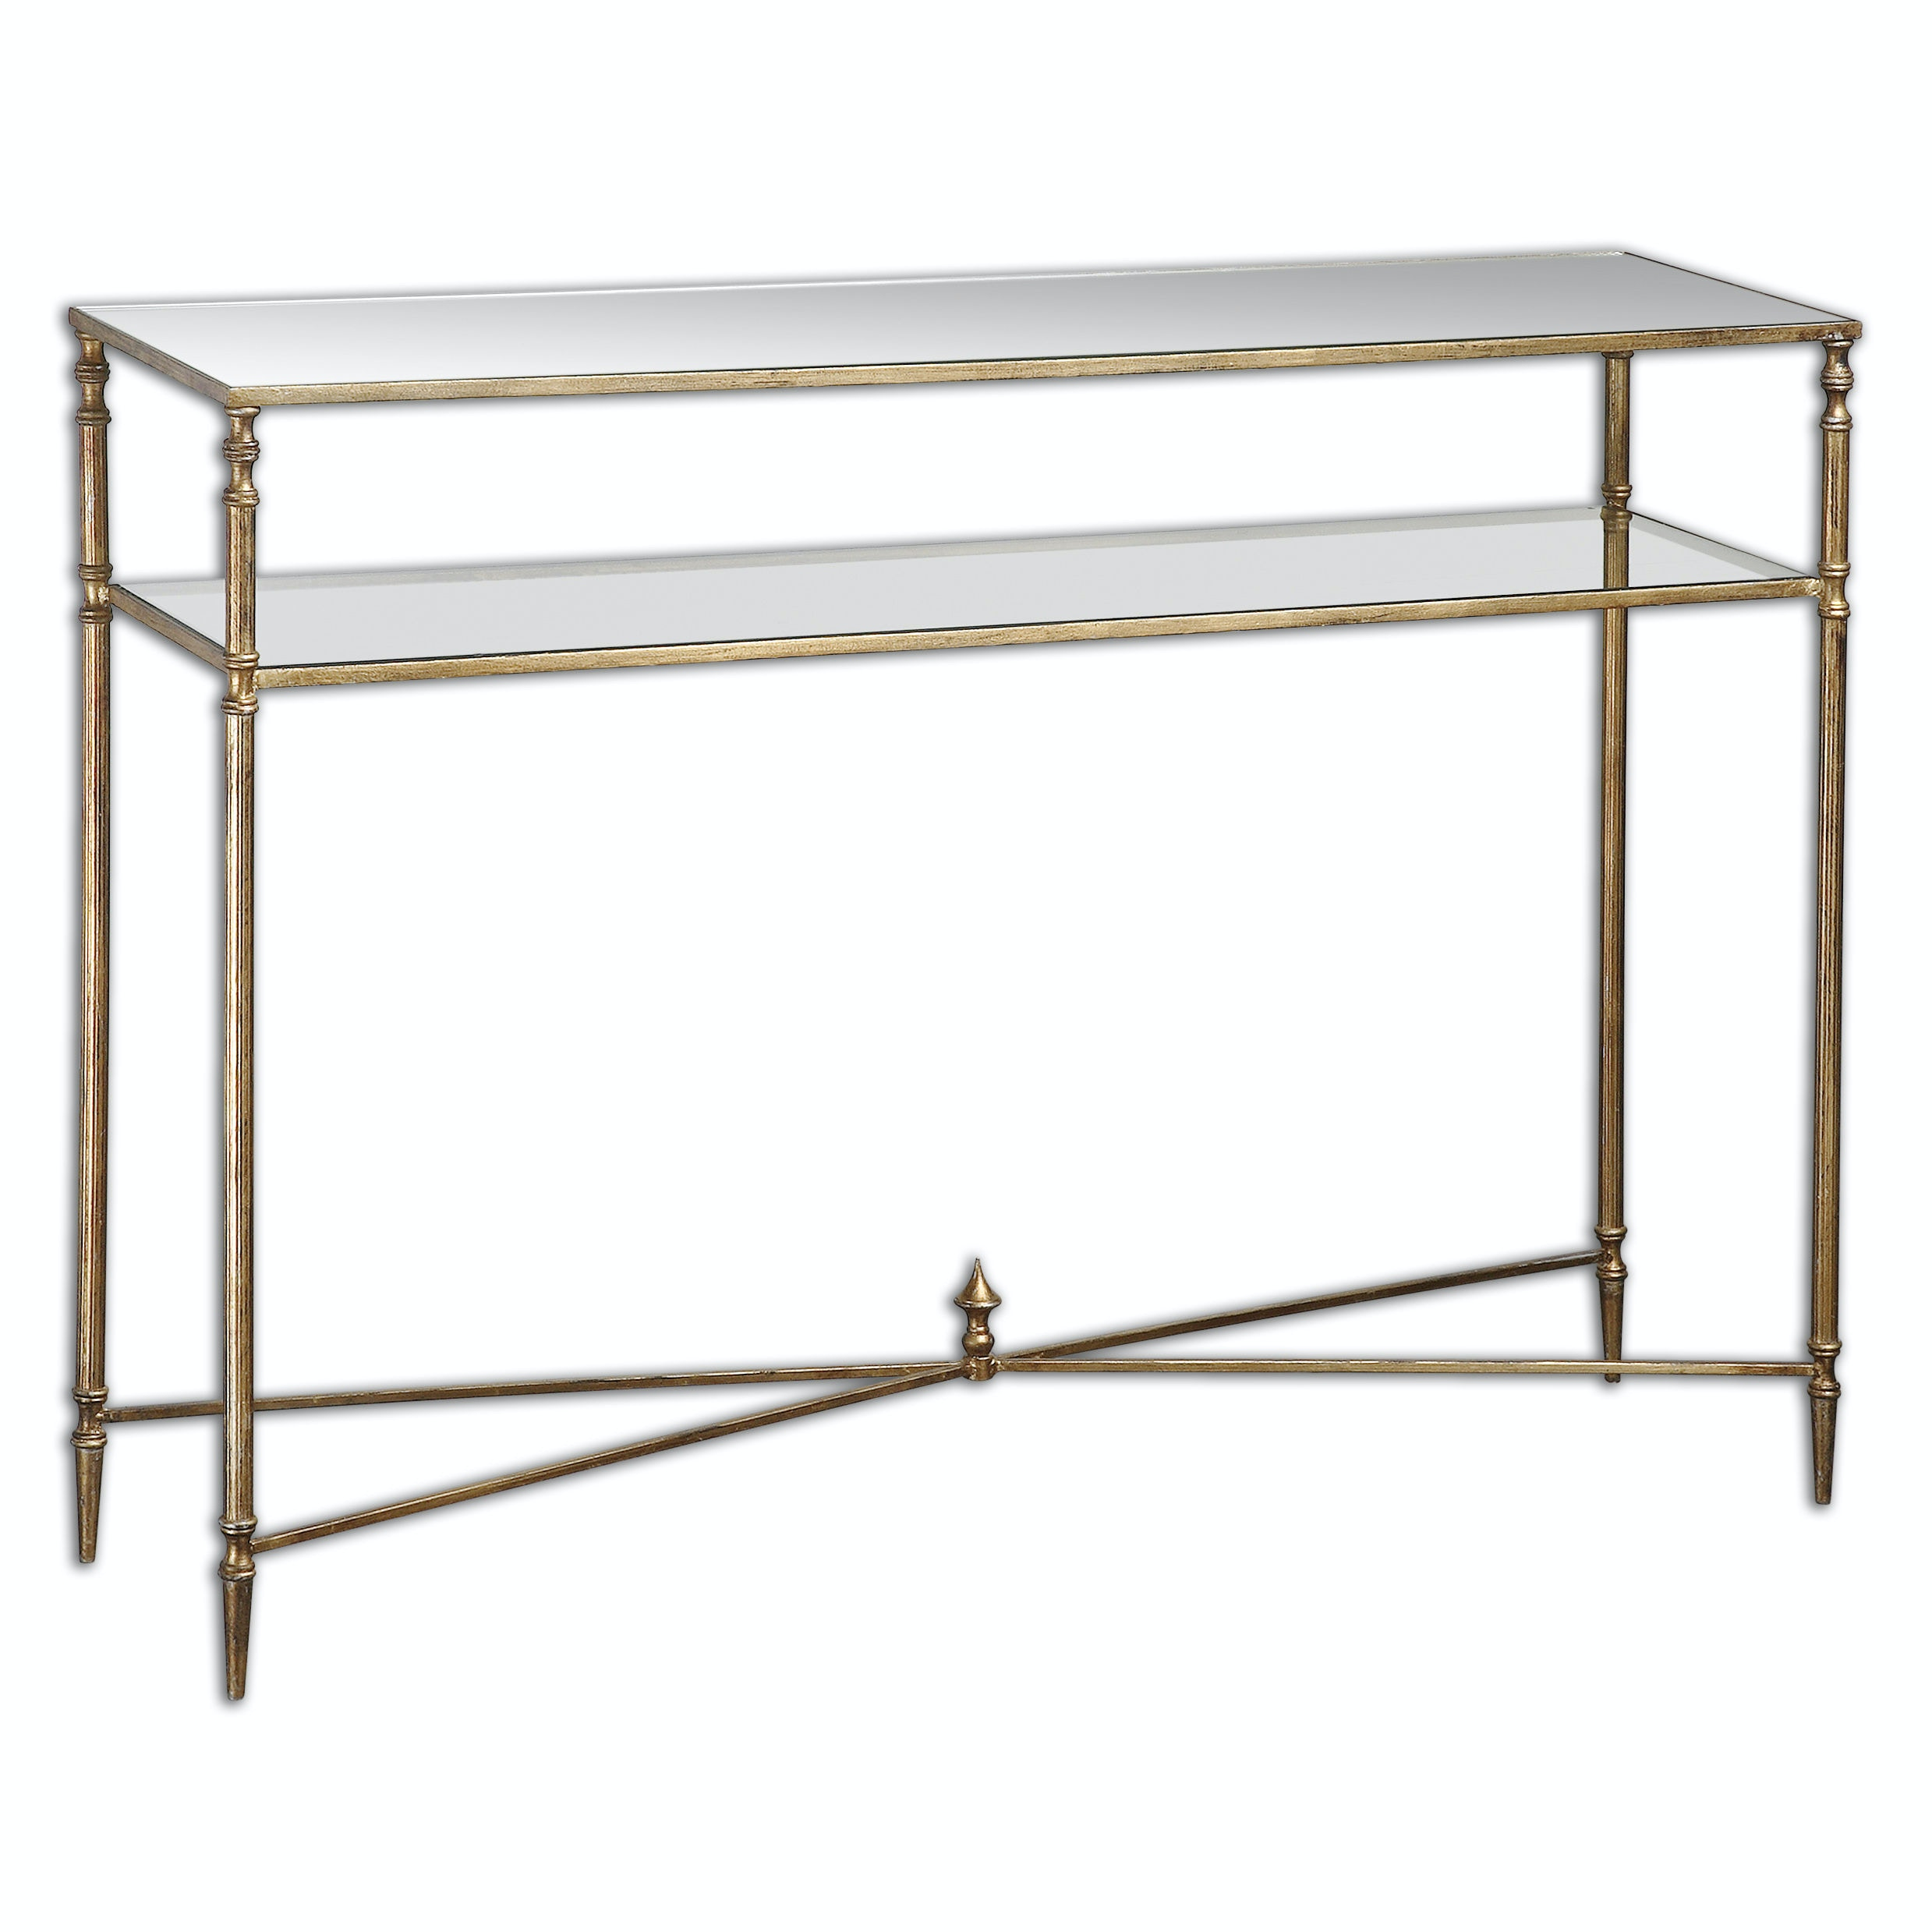 Uttermost Living Room Henzler Mirrored Glass Console Table 24278